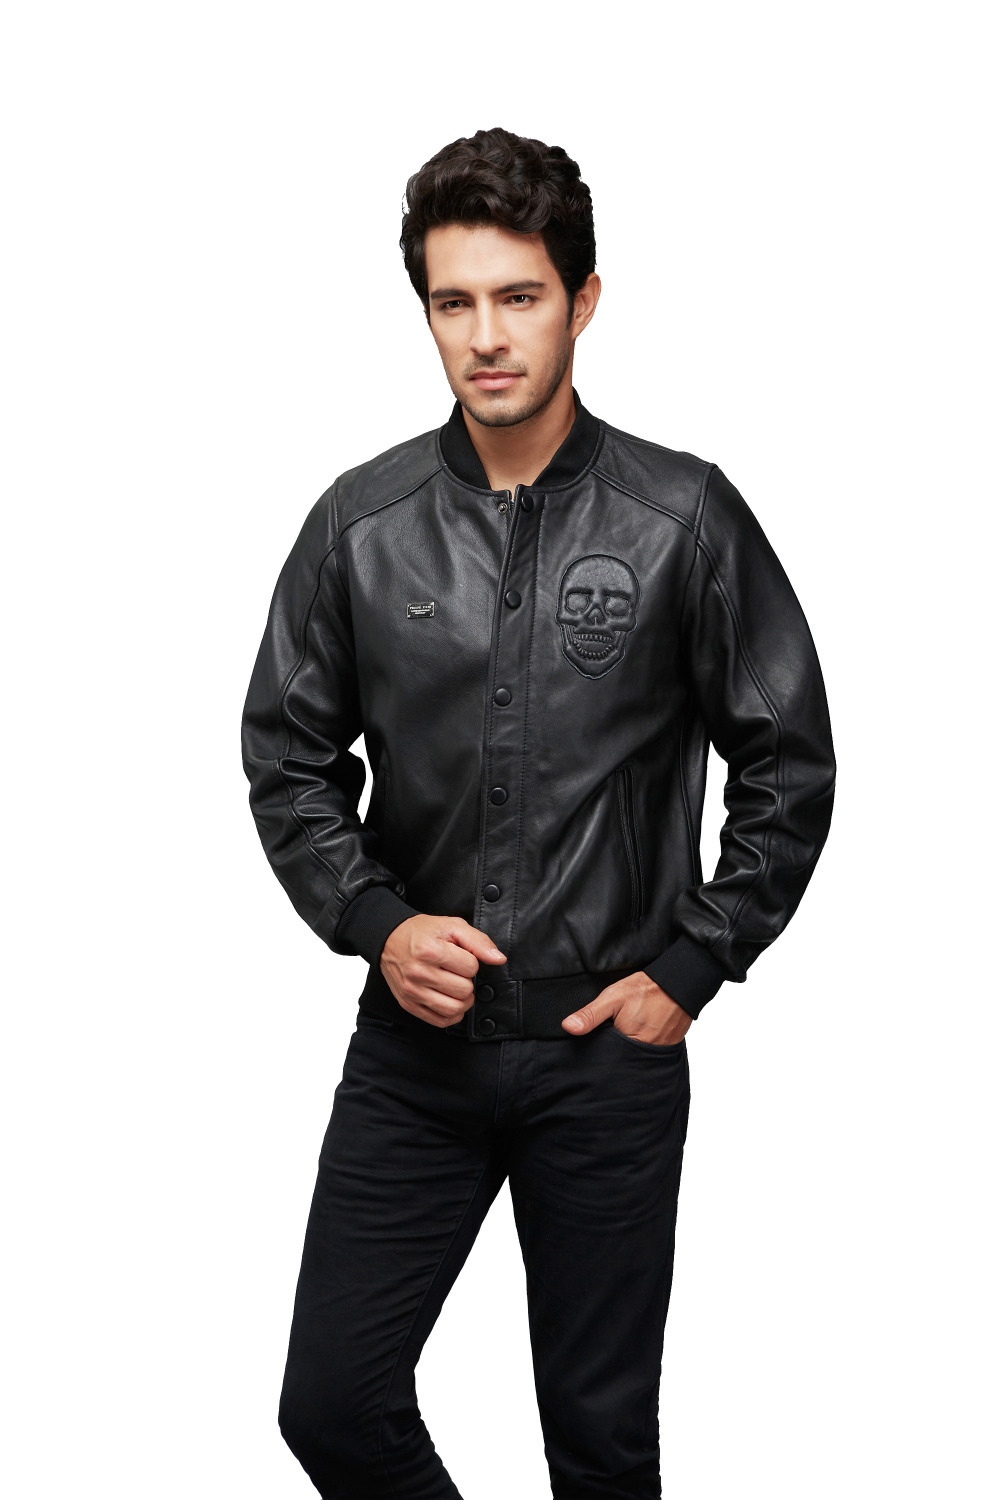 AKleatherware bomber jacket/custom bomber leather jackets